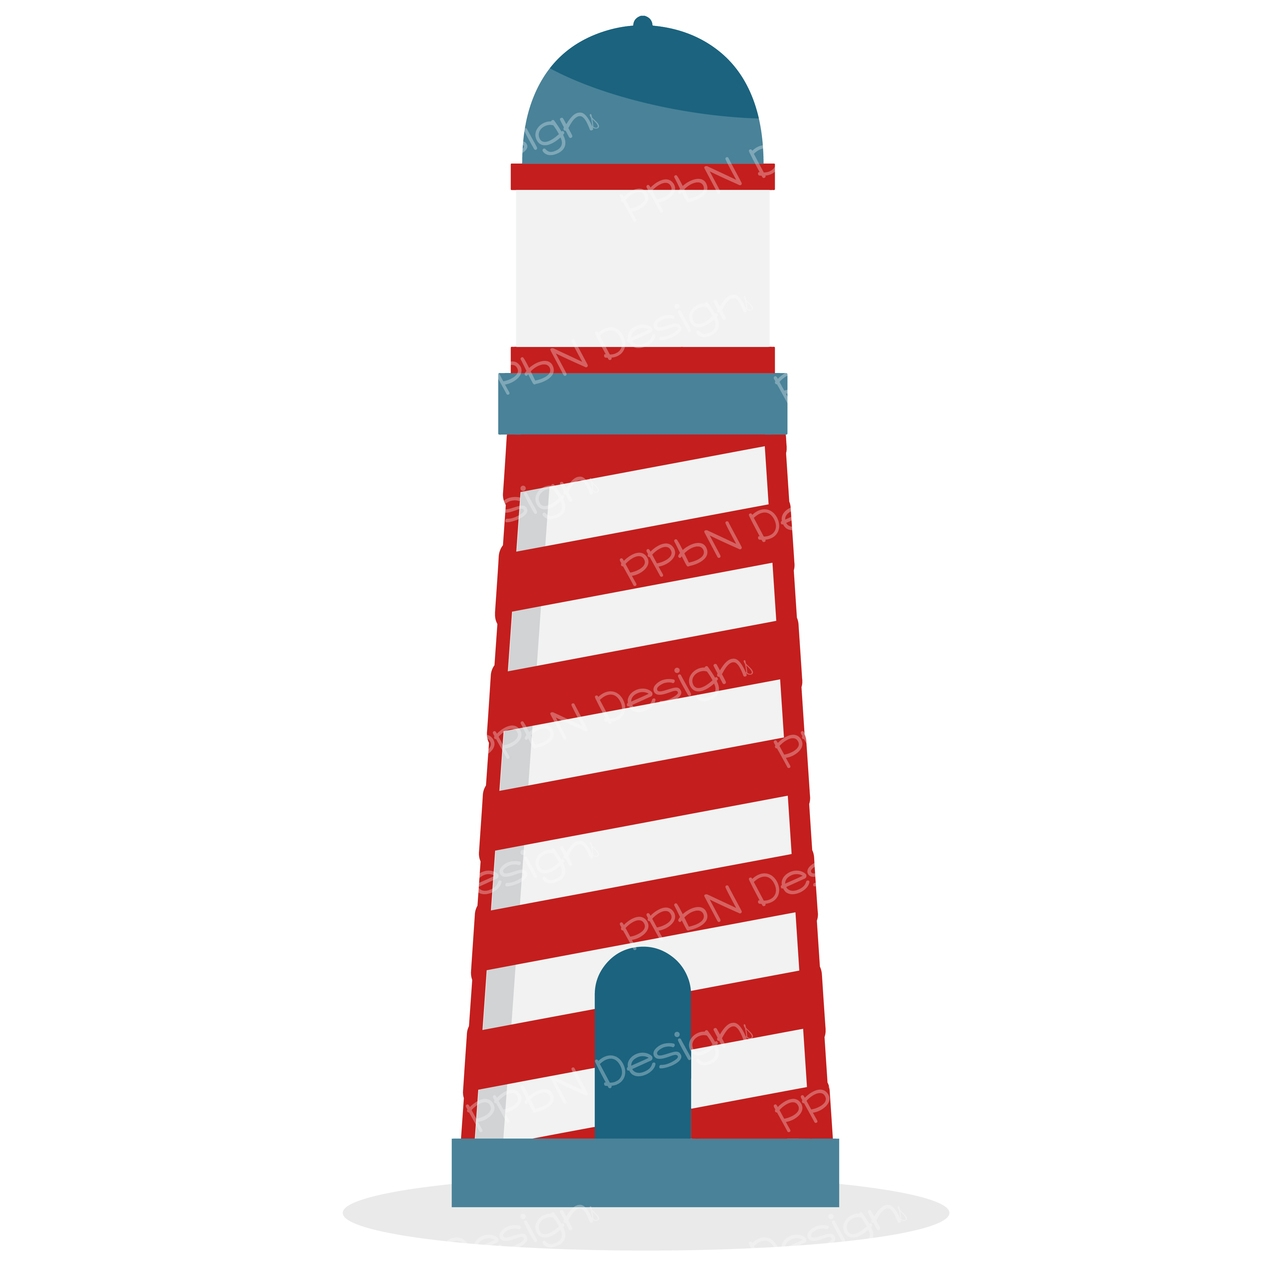 1280x1280 New Lighthouse Clipart Gallery